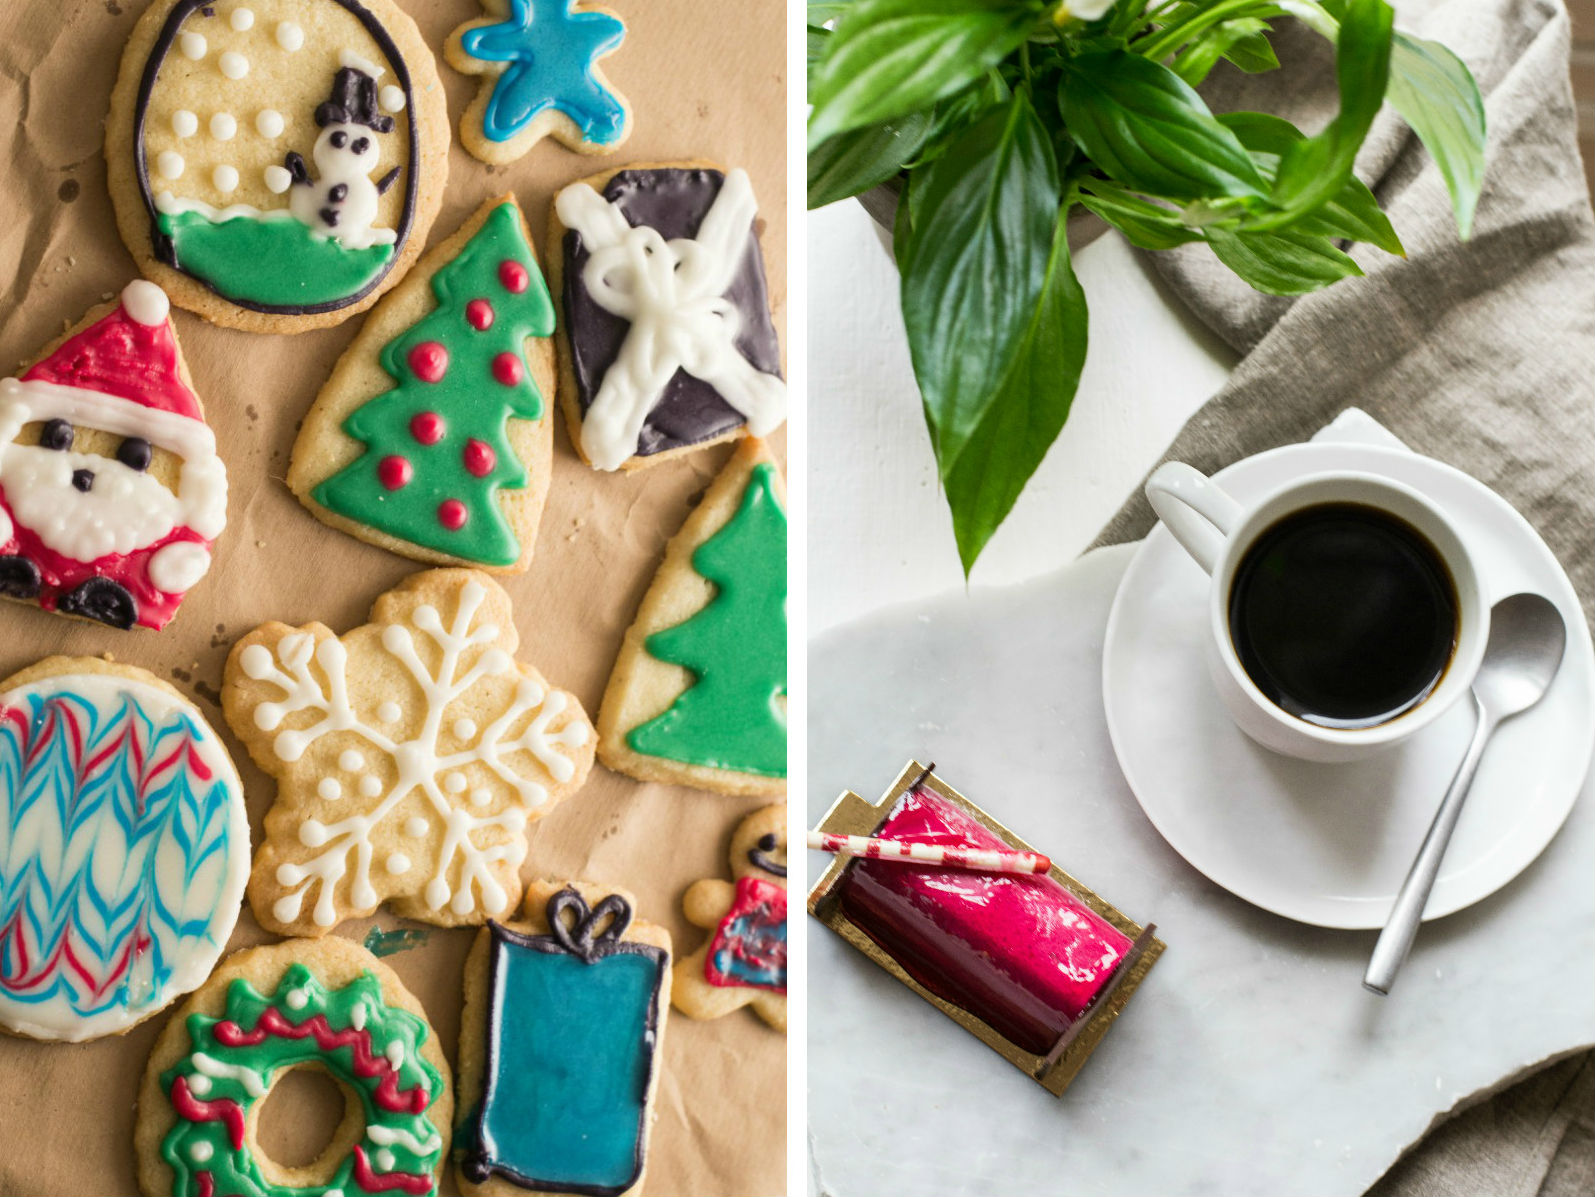 HiP Paris blog. A different kind of Christmas. No matter where you care, you can always curl up with a cup of coffee and some Christmas cookies to ward off the holiday blues.